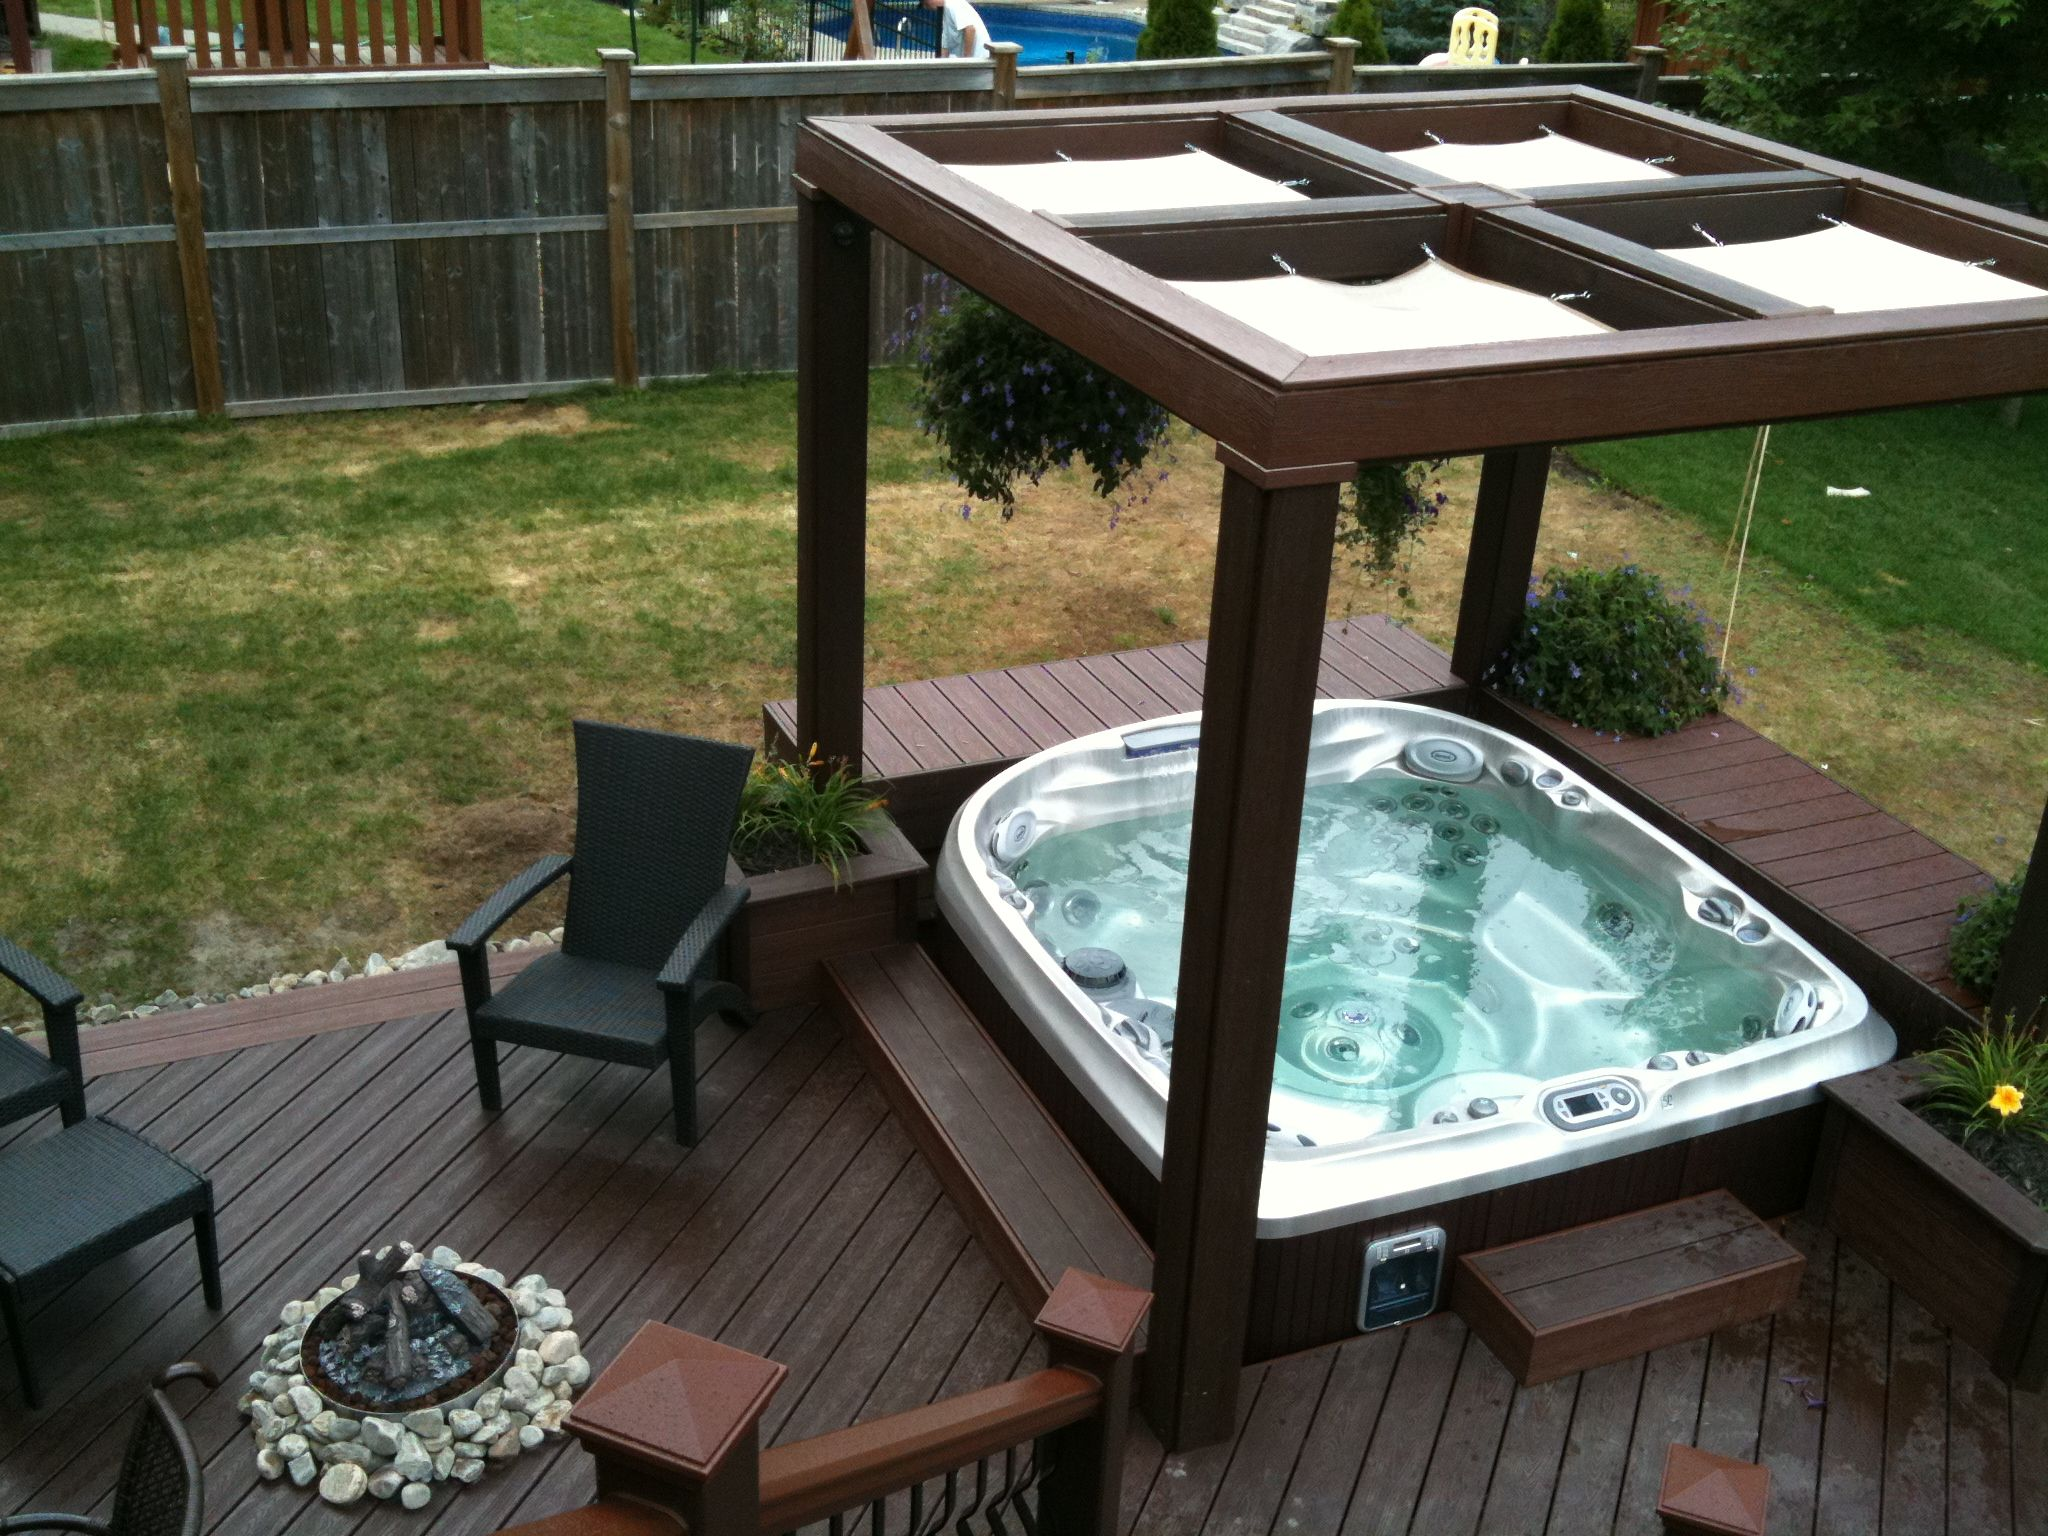 jacuzzi tub hot dealers customers tubs dealership in have say showroom to ontario what oakville store our